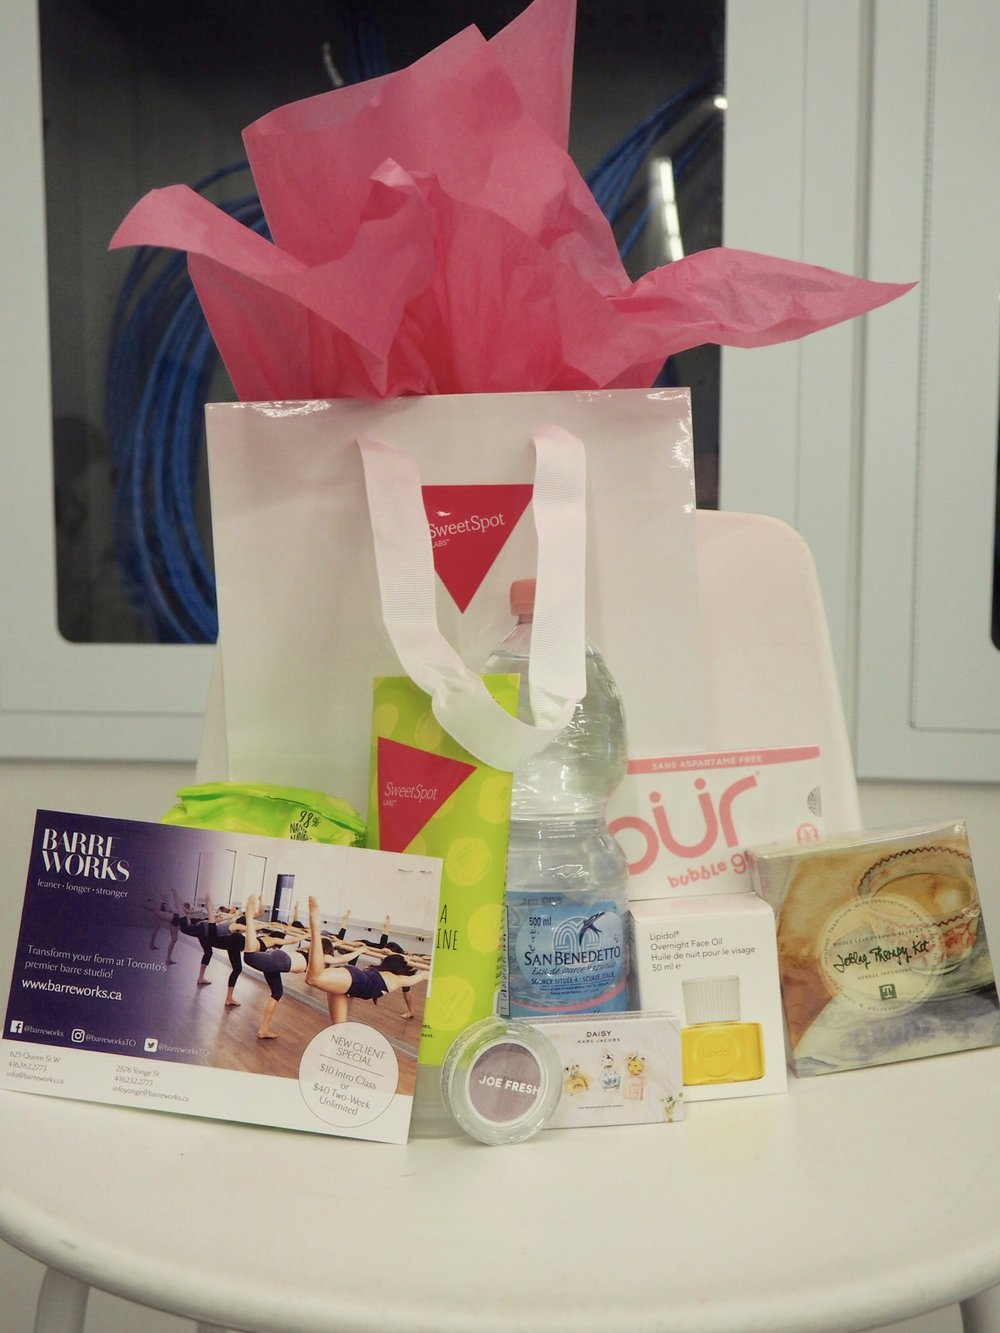 A Sneak Peek of our panelist's gift bags. Which featured all the items below, plus extra, full-sized goodies from SweetSpotLabs.ca (A Canadian & Women-owned company)